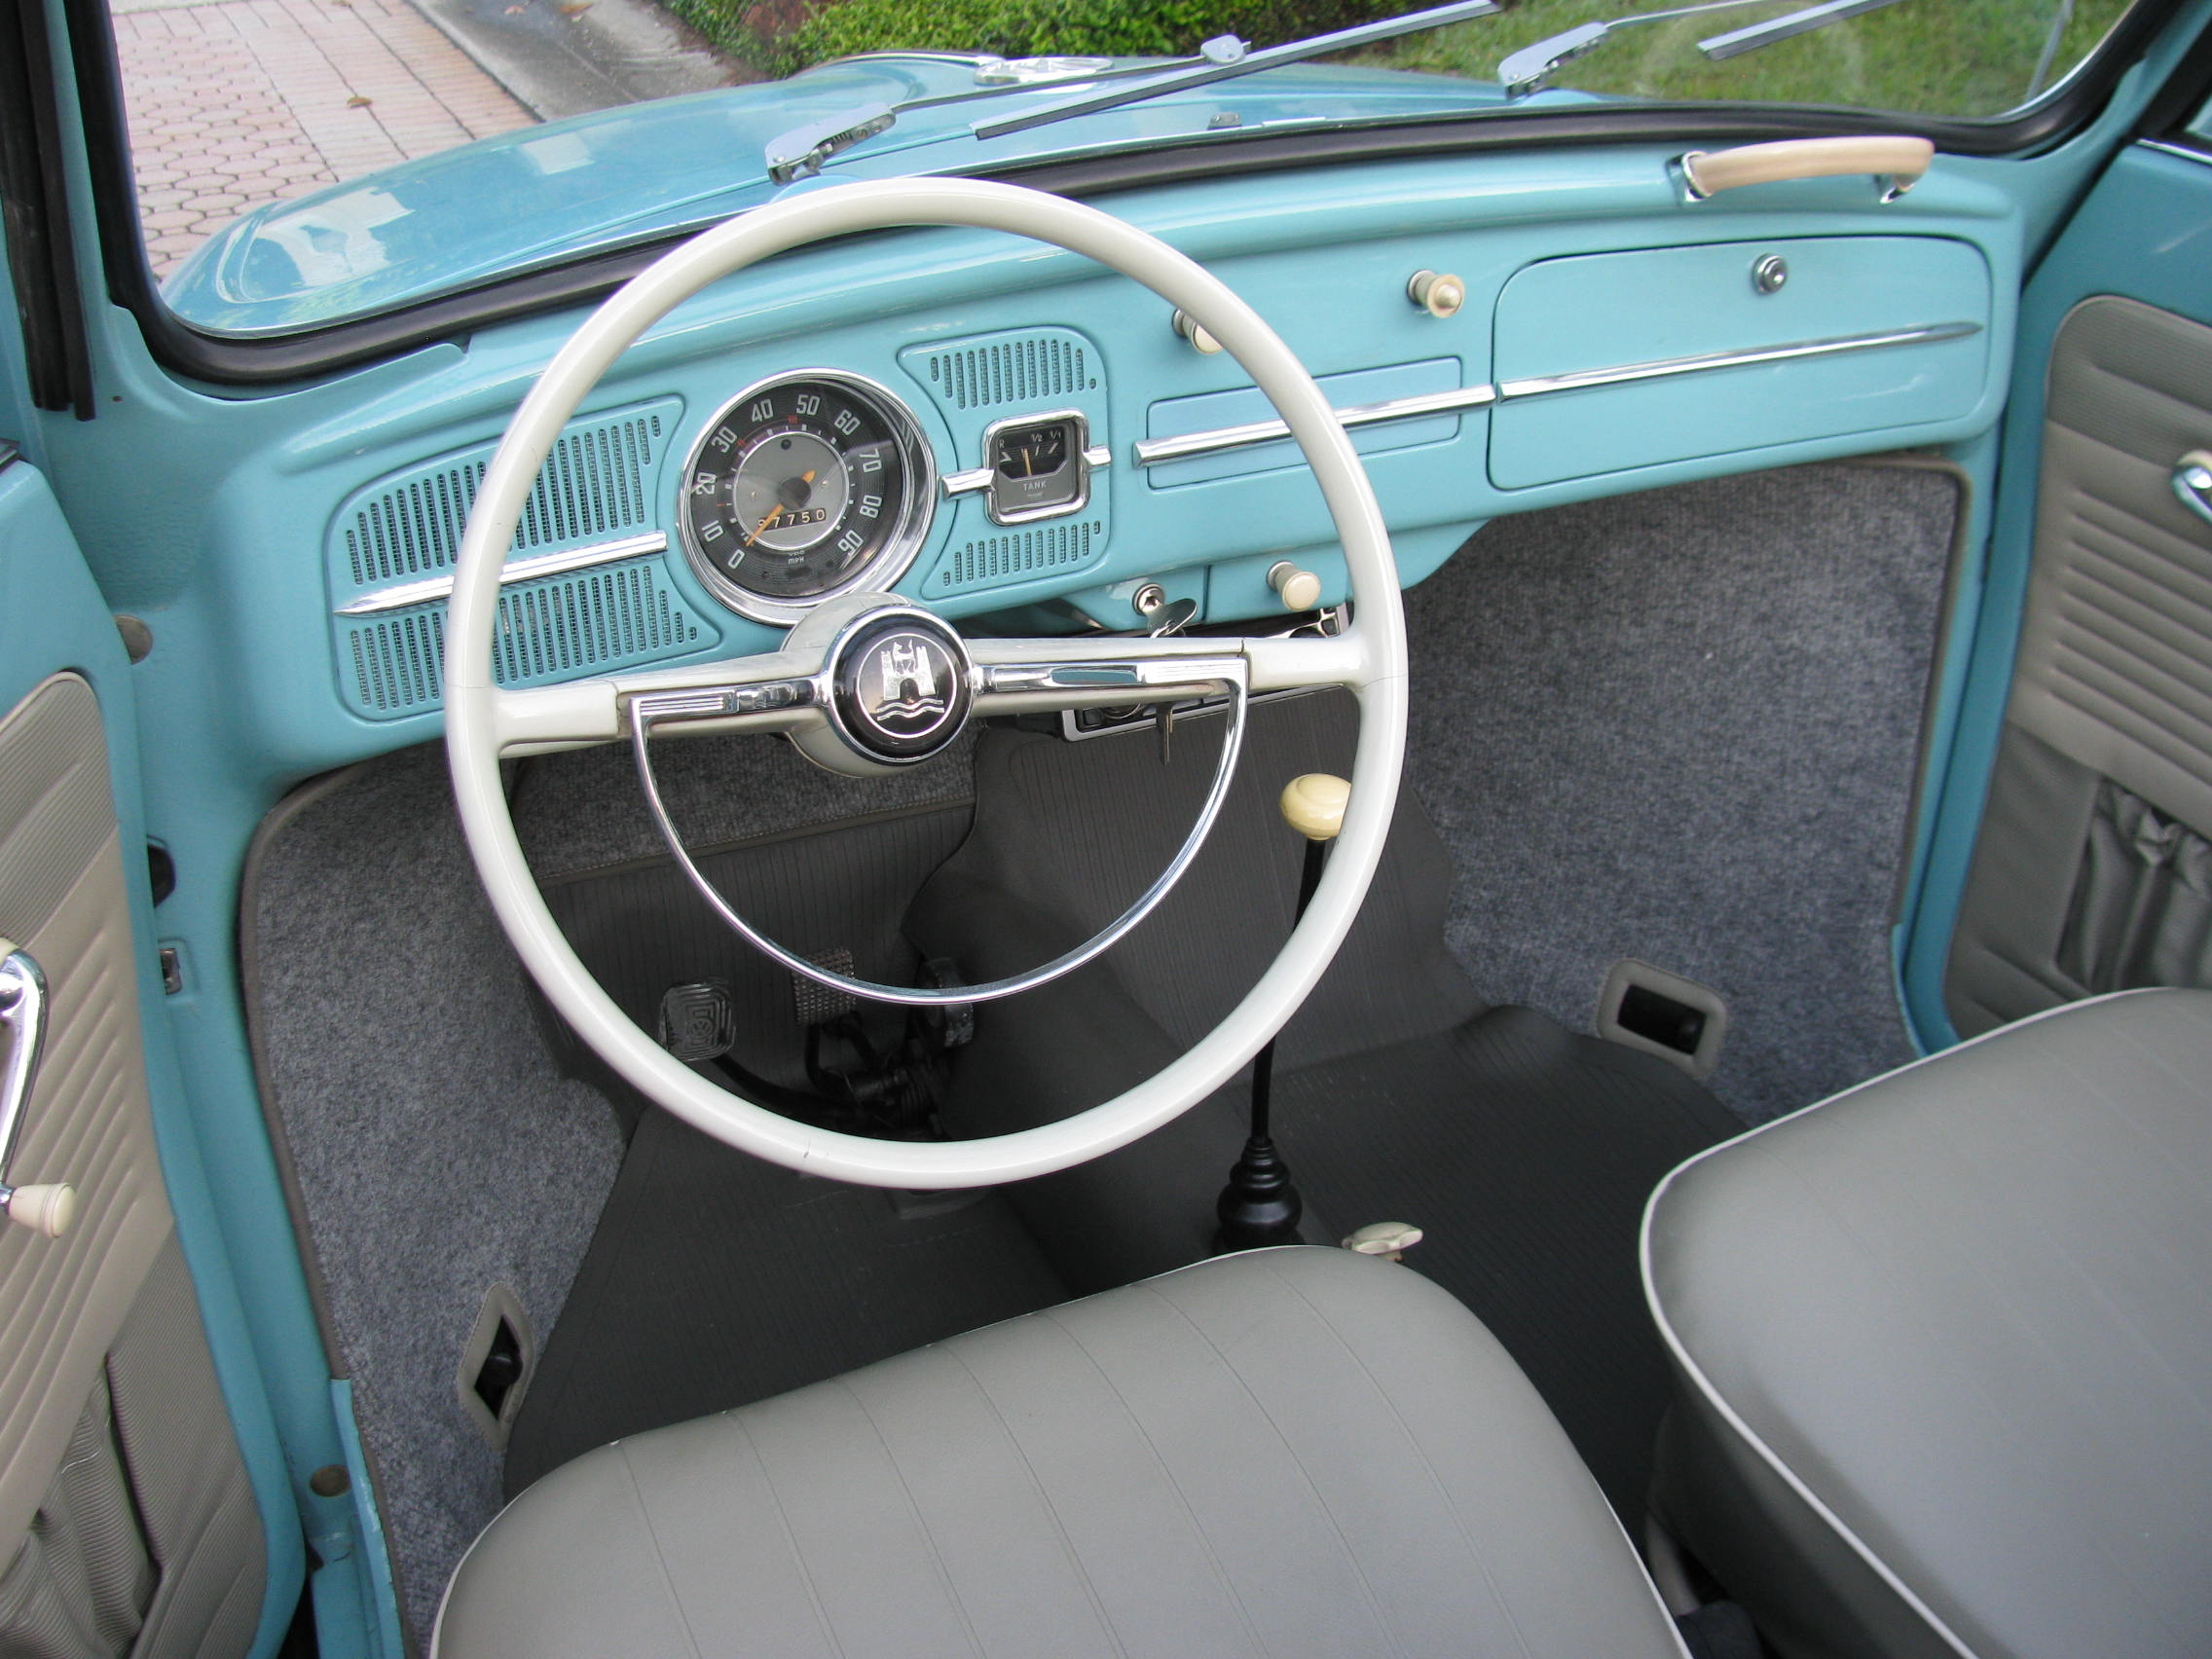 1963 Volkswagen Beetle Convertible Sold Vantage Sports Cars 1960 Interior